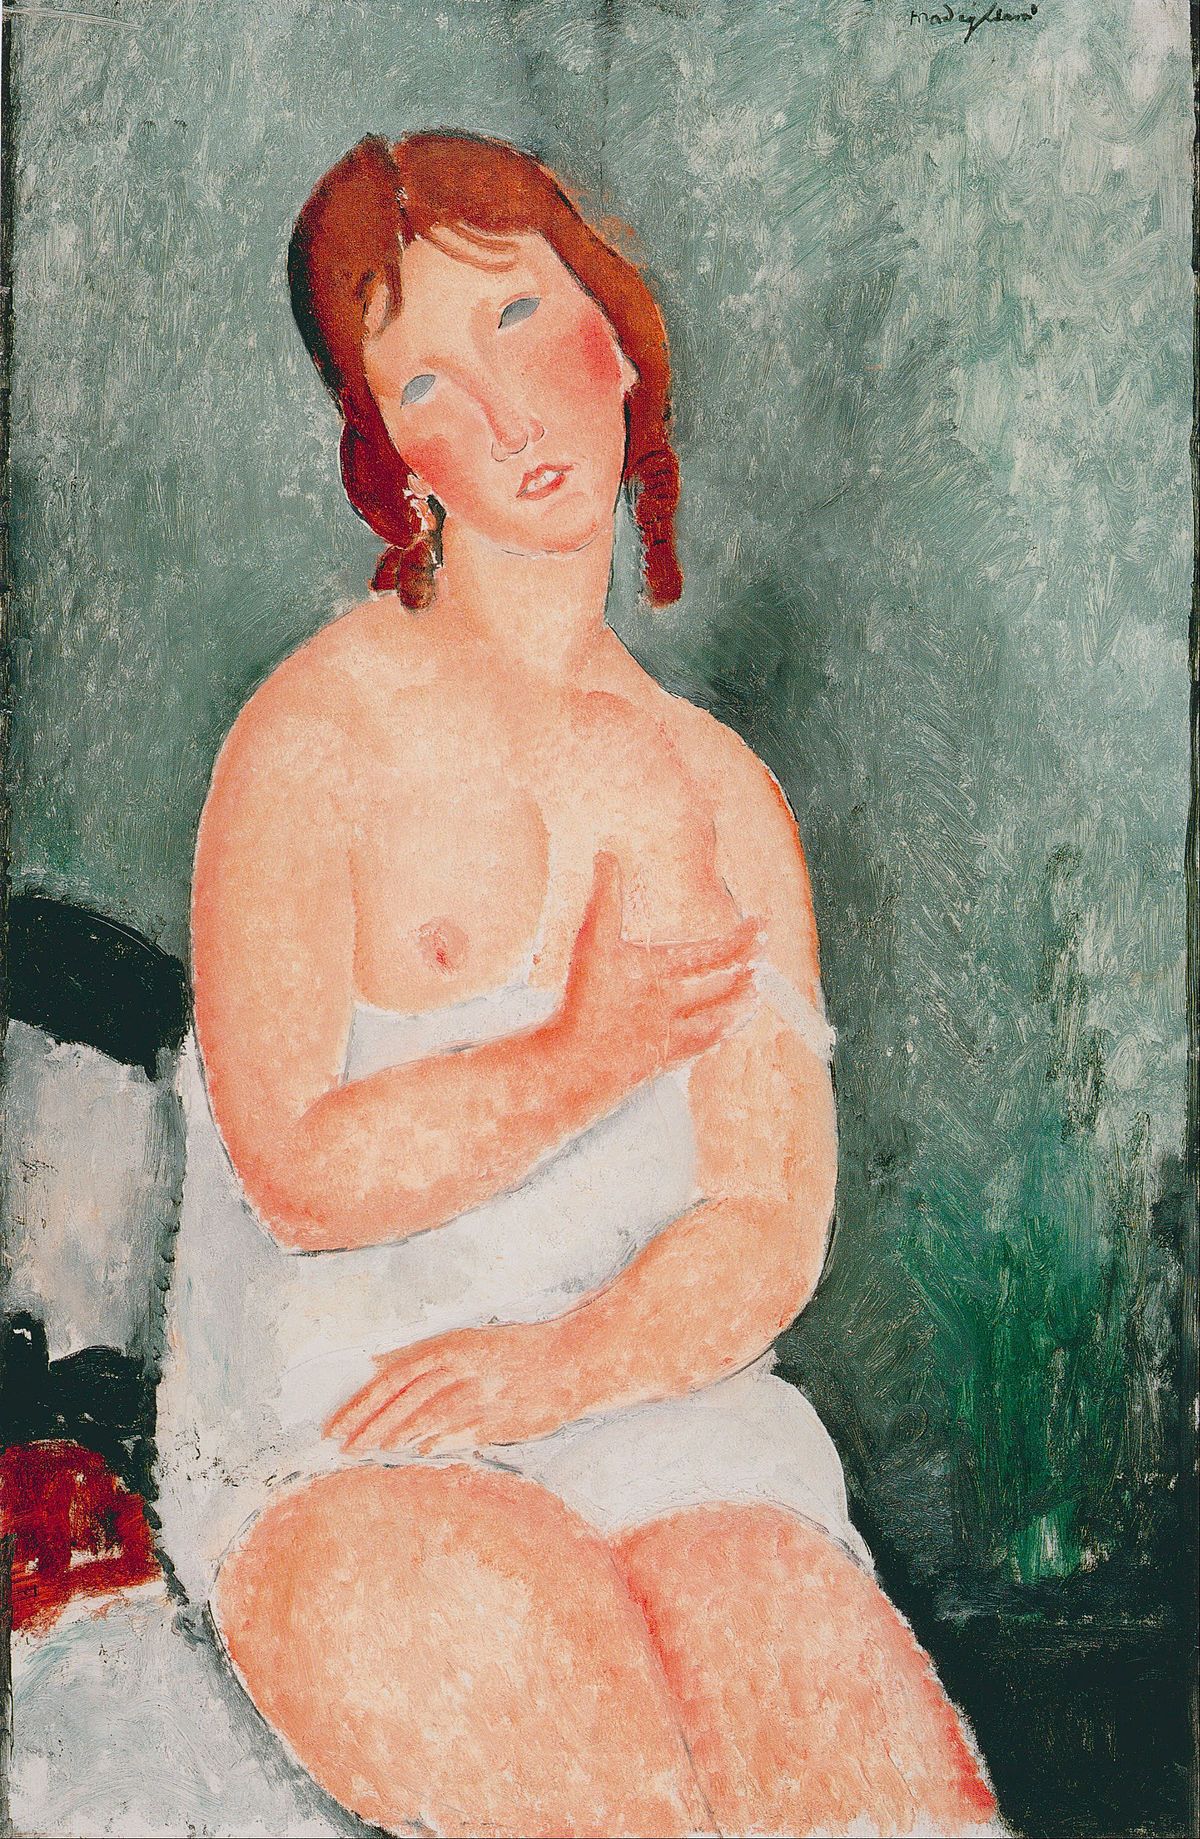 http://upload.wikimedia.org/wikipedia/commons/thumb/b/b9/Amedeo_Modigliani_-_Young_Woman_in_a_Shirt%2C_1918_-_Google_Art_Project.jpg/1200px-Amedeo_Modigliani_-_Young_Woman_in_a_Shirt%2C_1918_-_Google_Art_Project.jpg